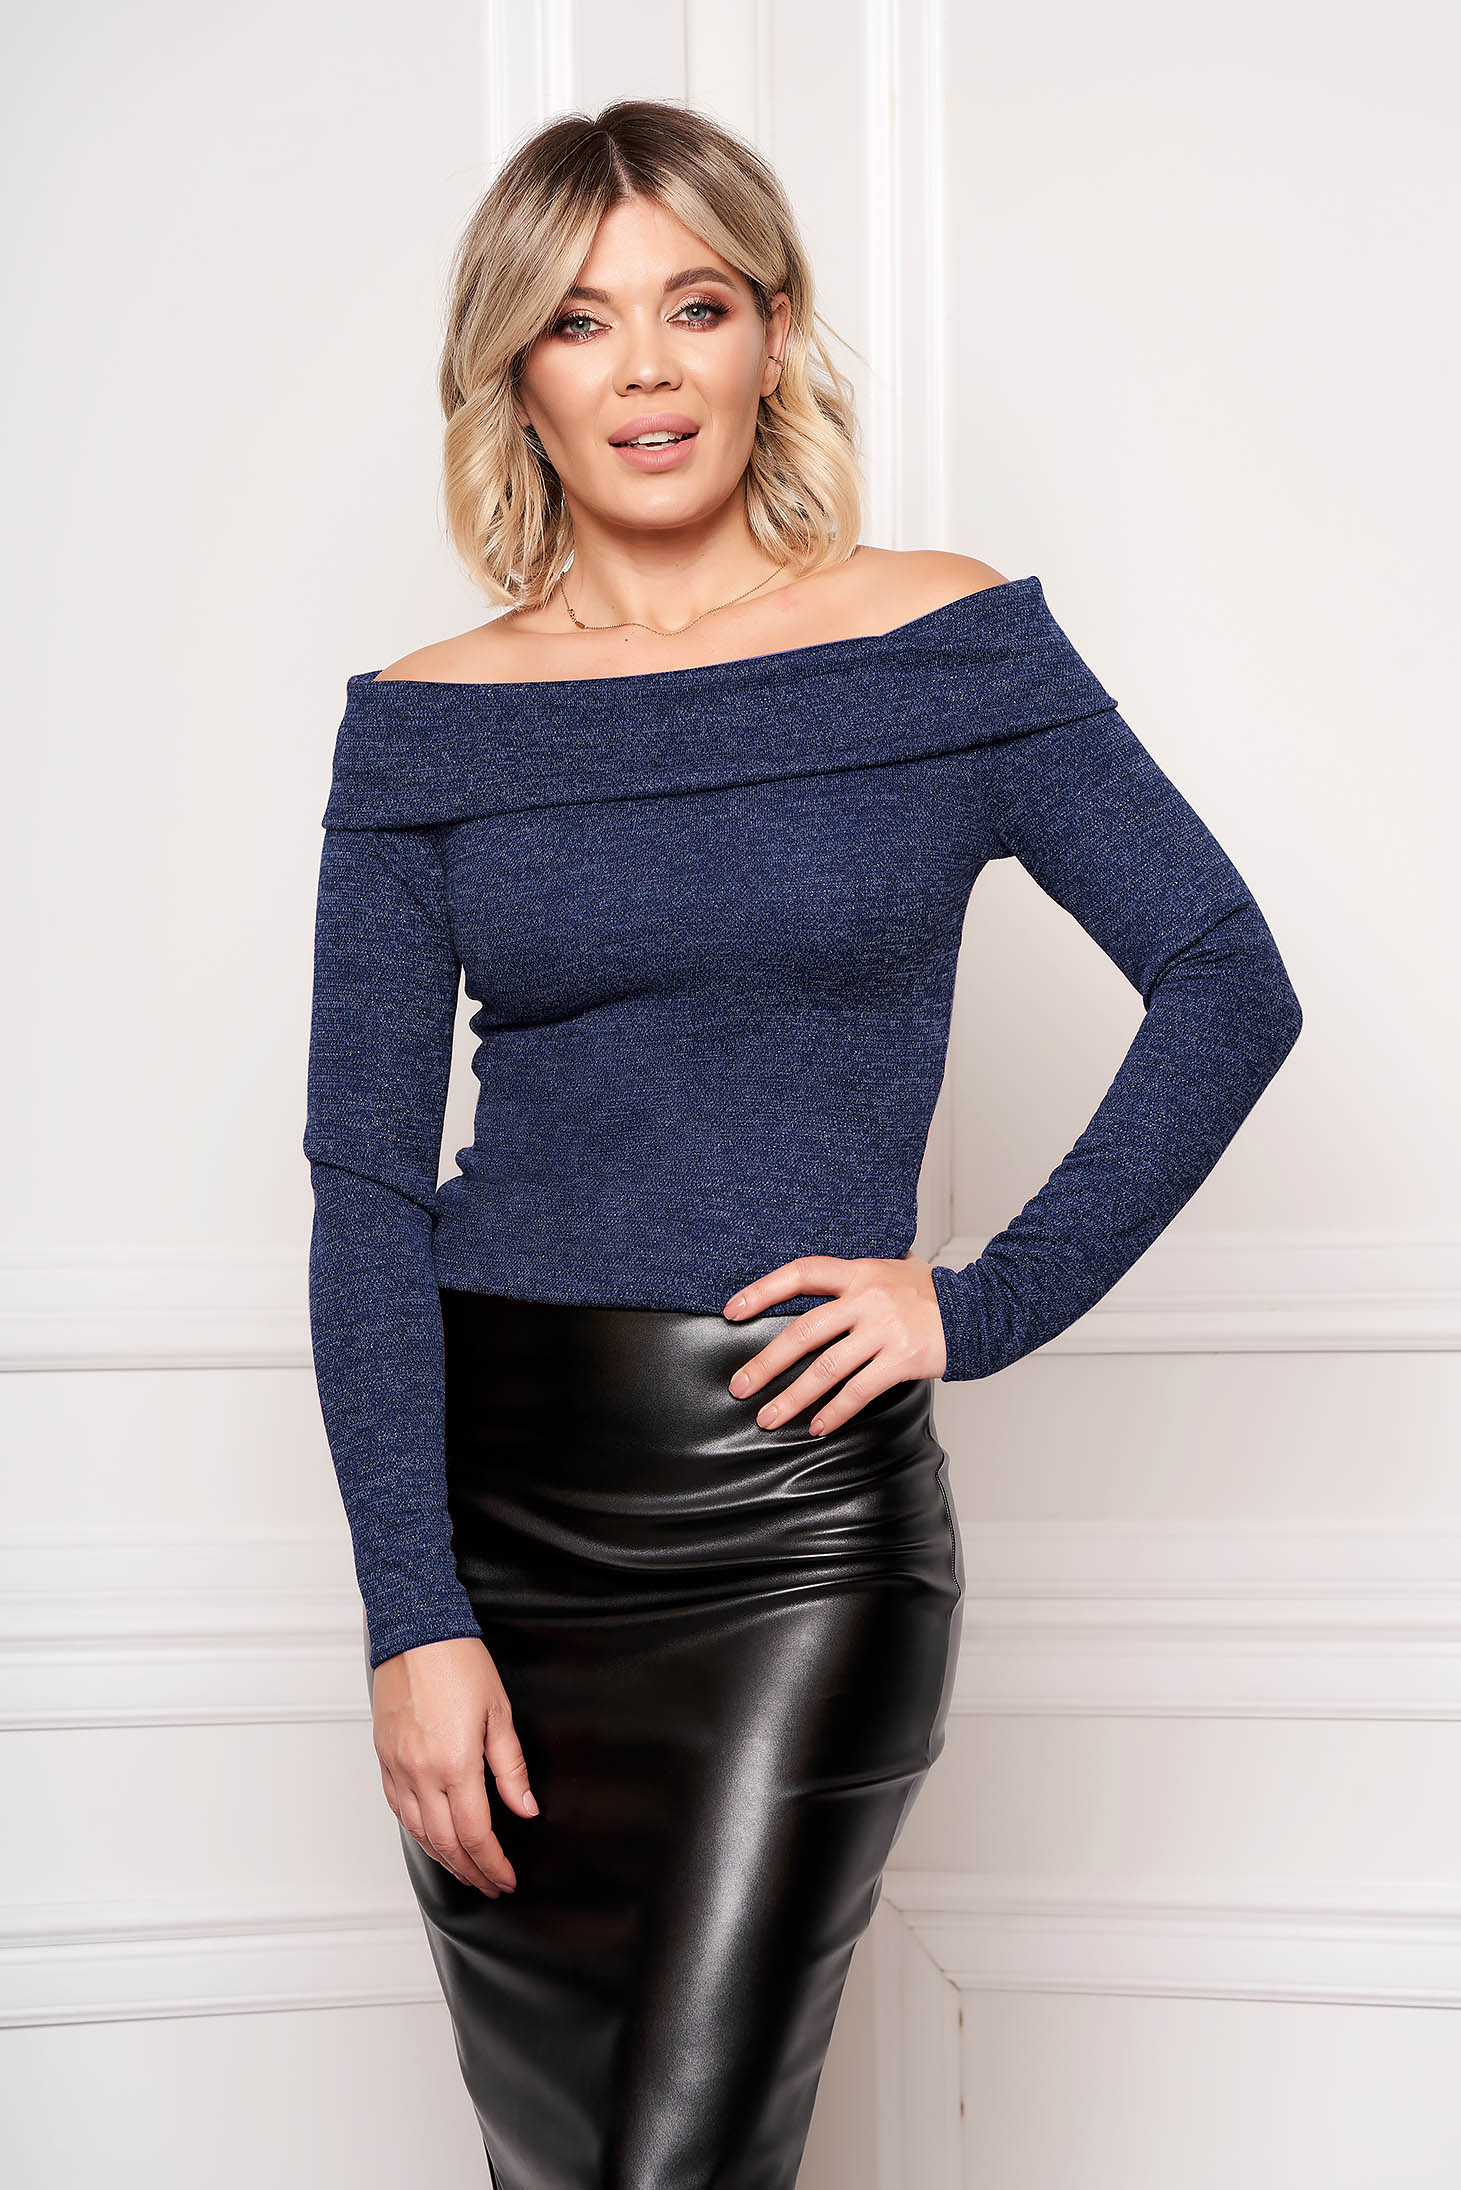 StarShinerS darkblue sweater elegant short cut tented long sleeved naked shoulders knitted fabric